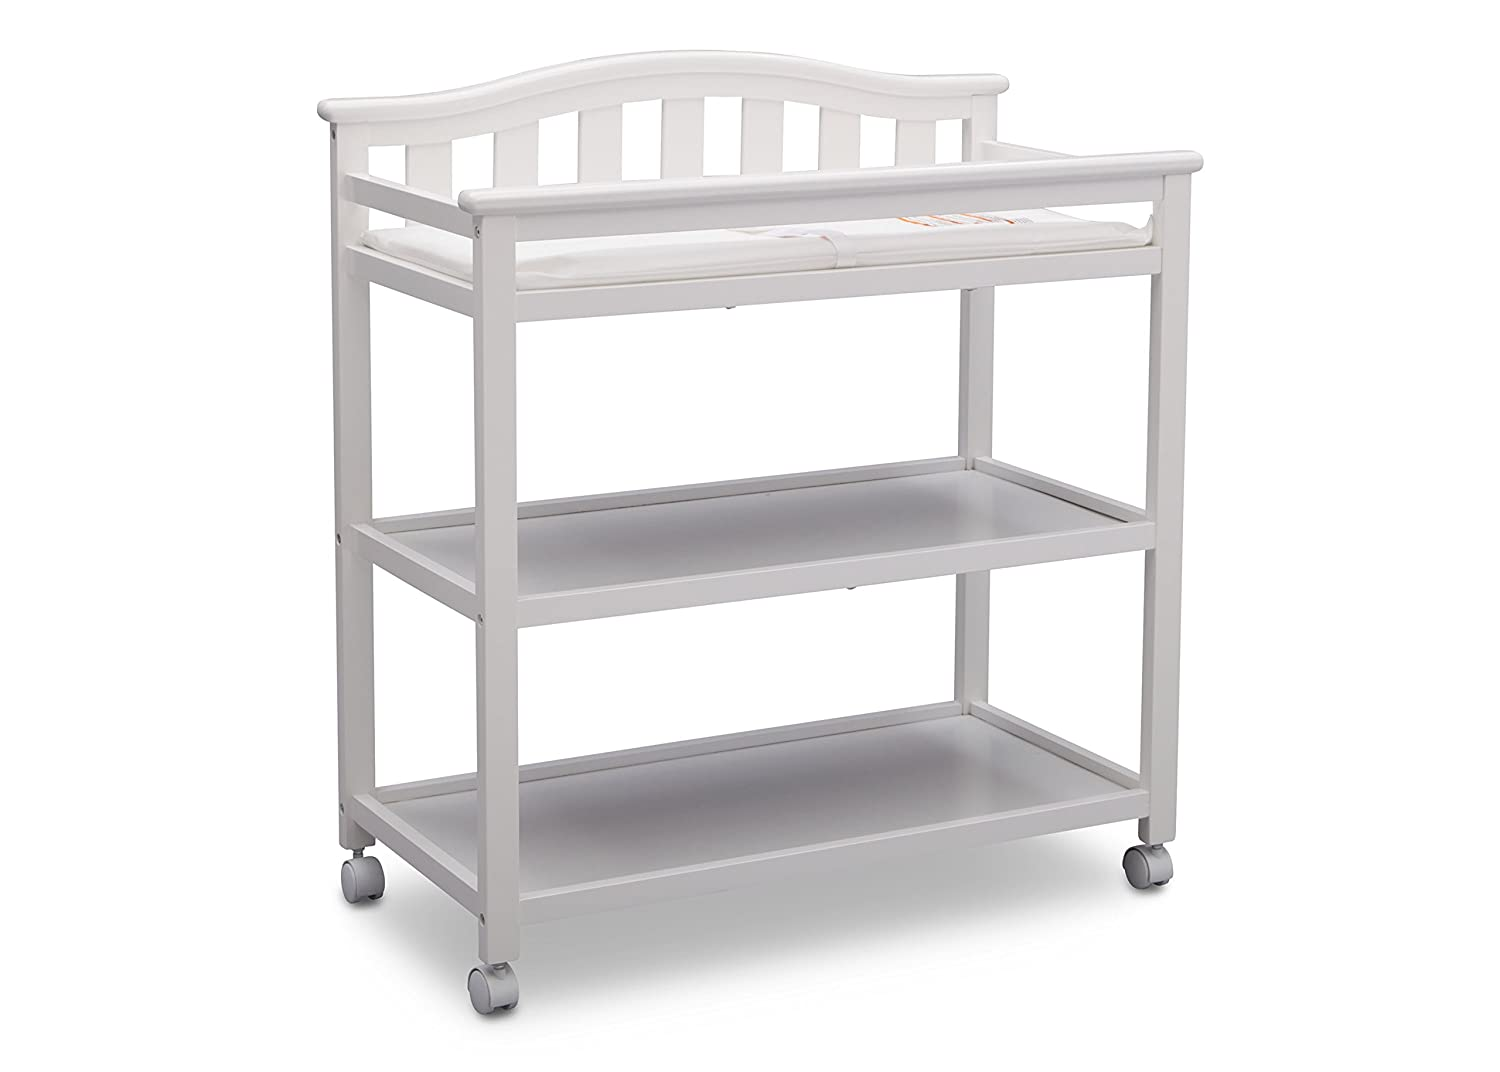 Delta Children Bell Top Changing Table with Casters, Grey 540242-026